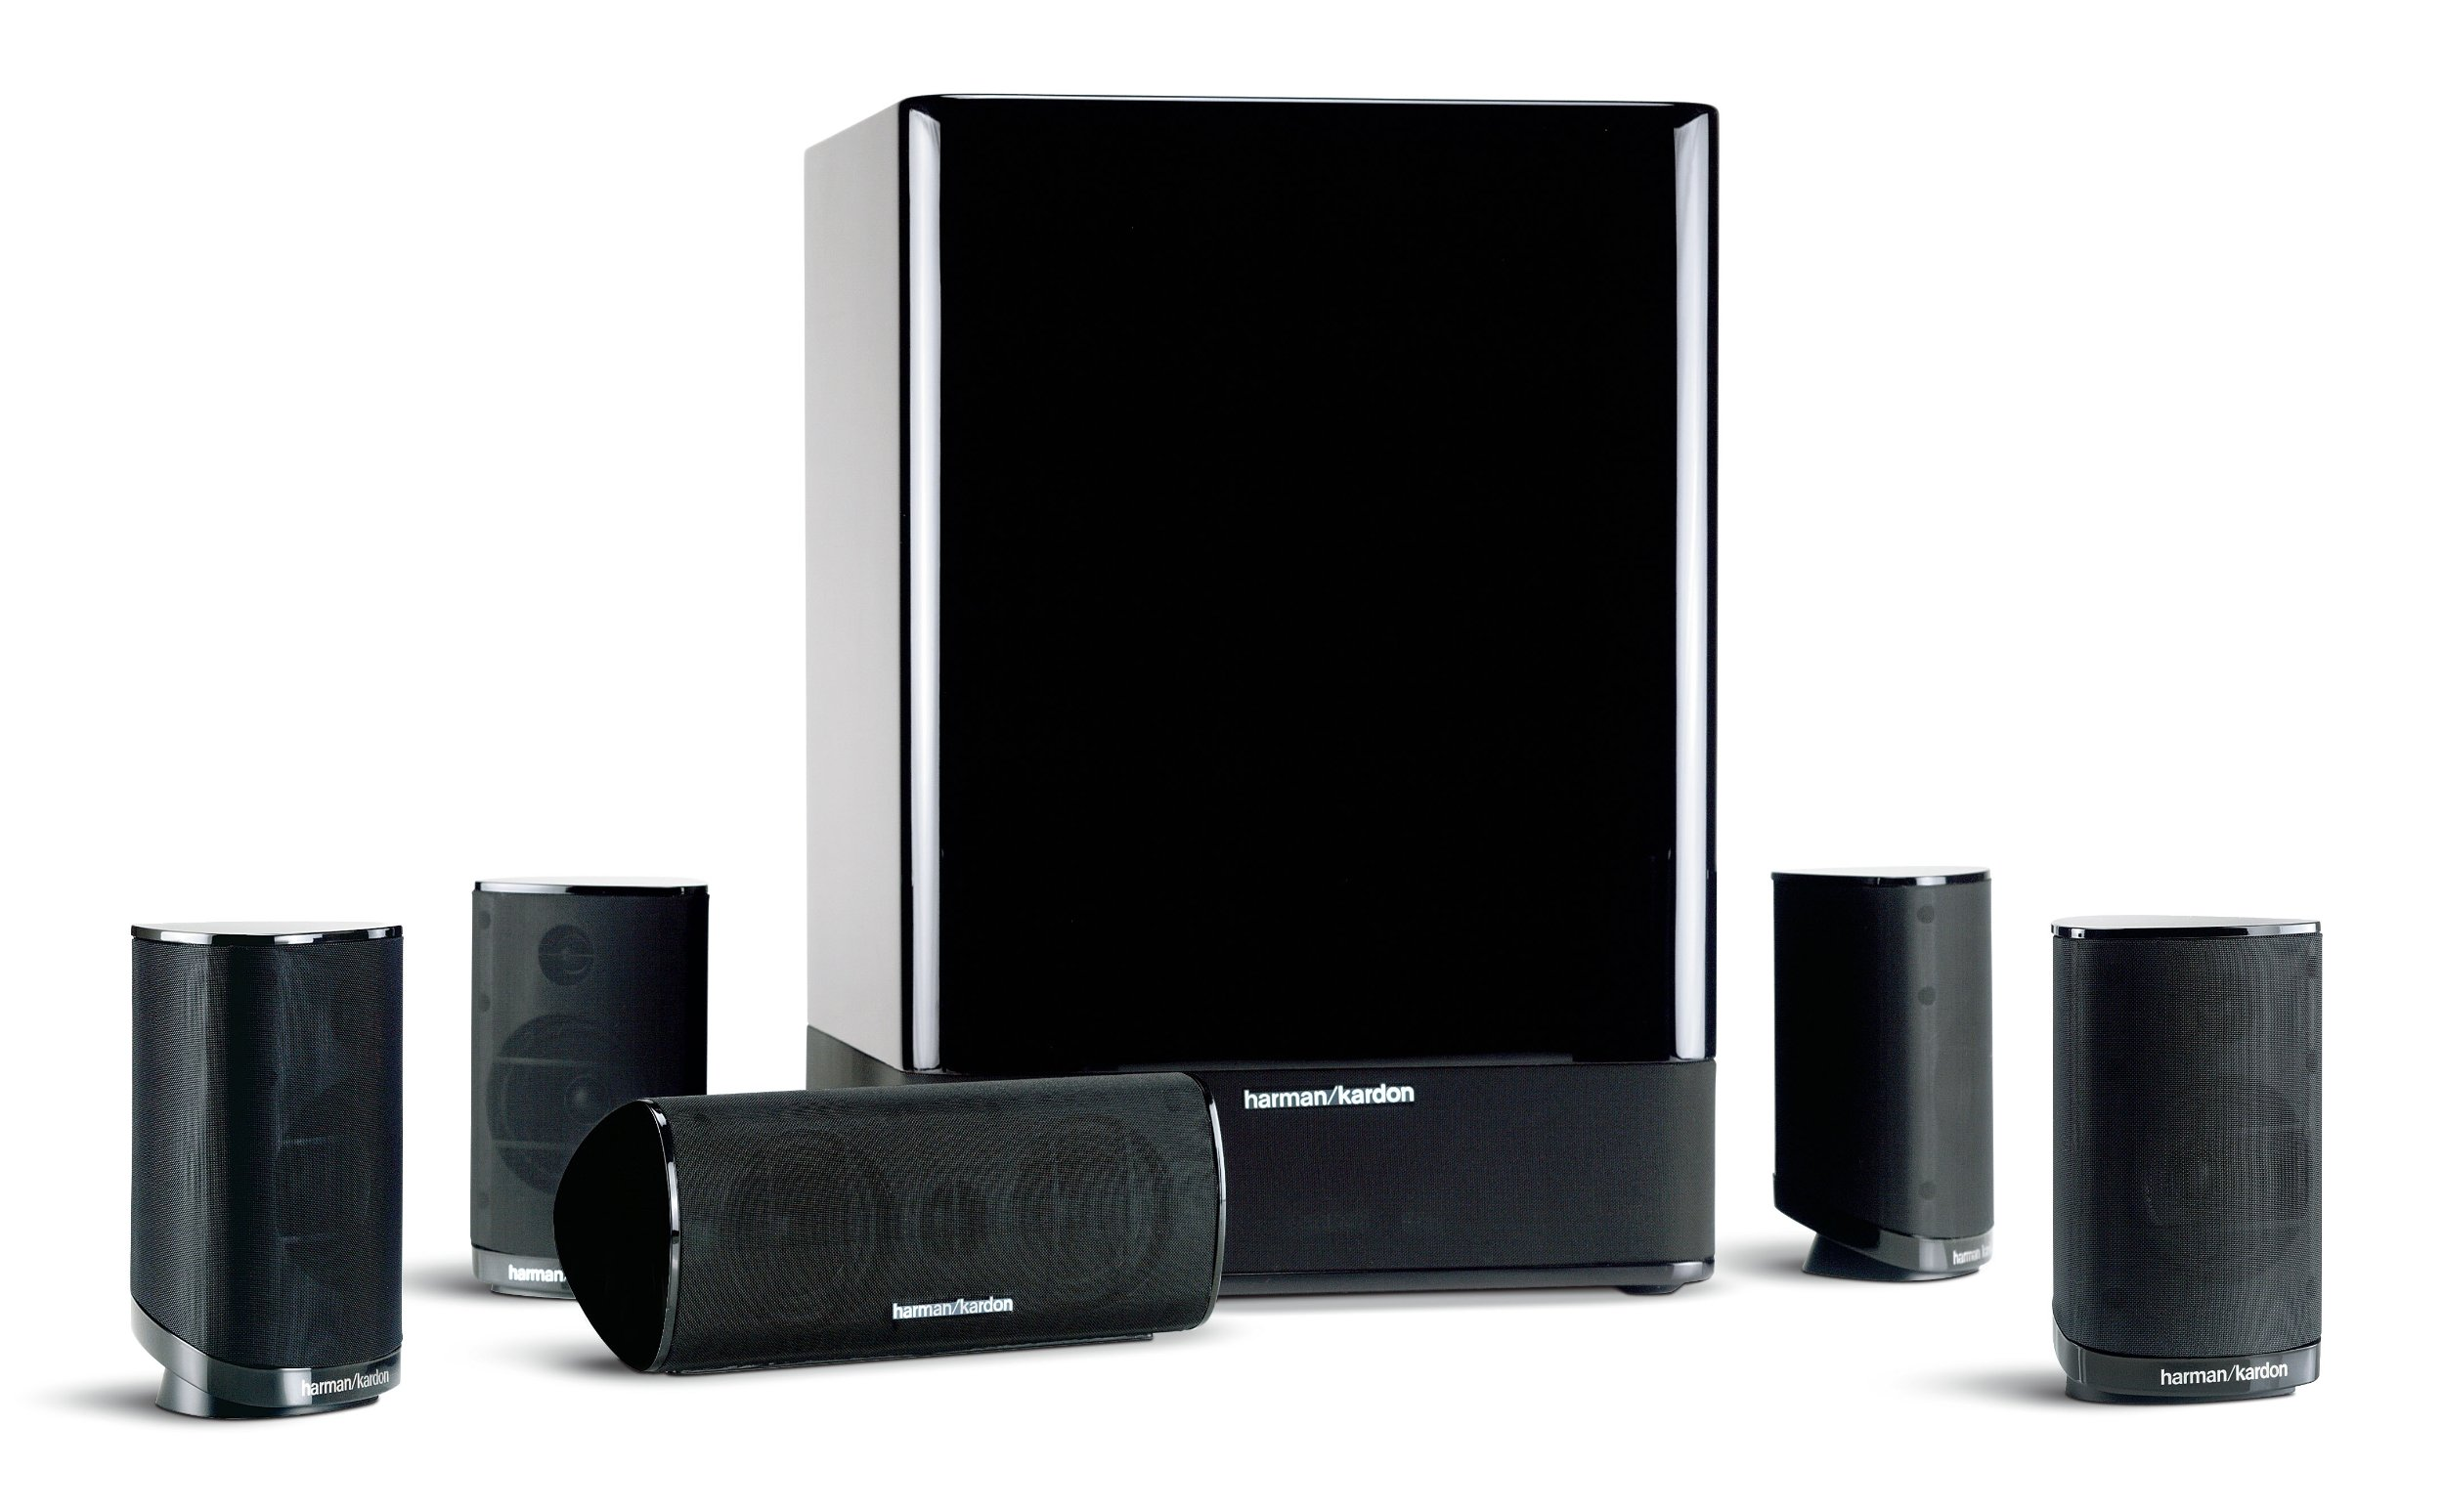 Harman Kardon HKTS-15 5.1 High-Performance, 6-Piece Home Theater Speaker System (Black Gloss) (Discontinued by Manufacturer) by Harman Kardon